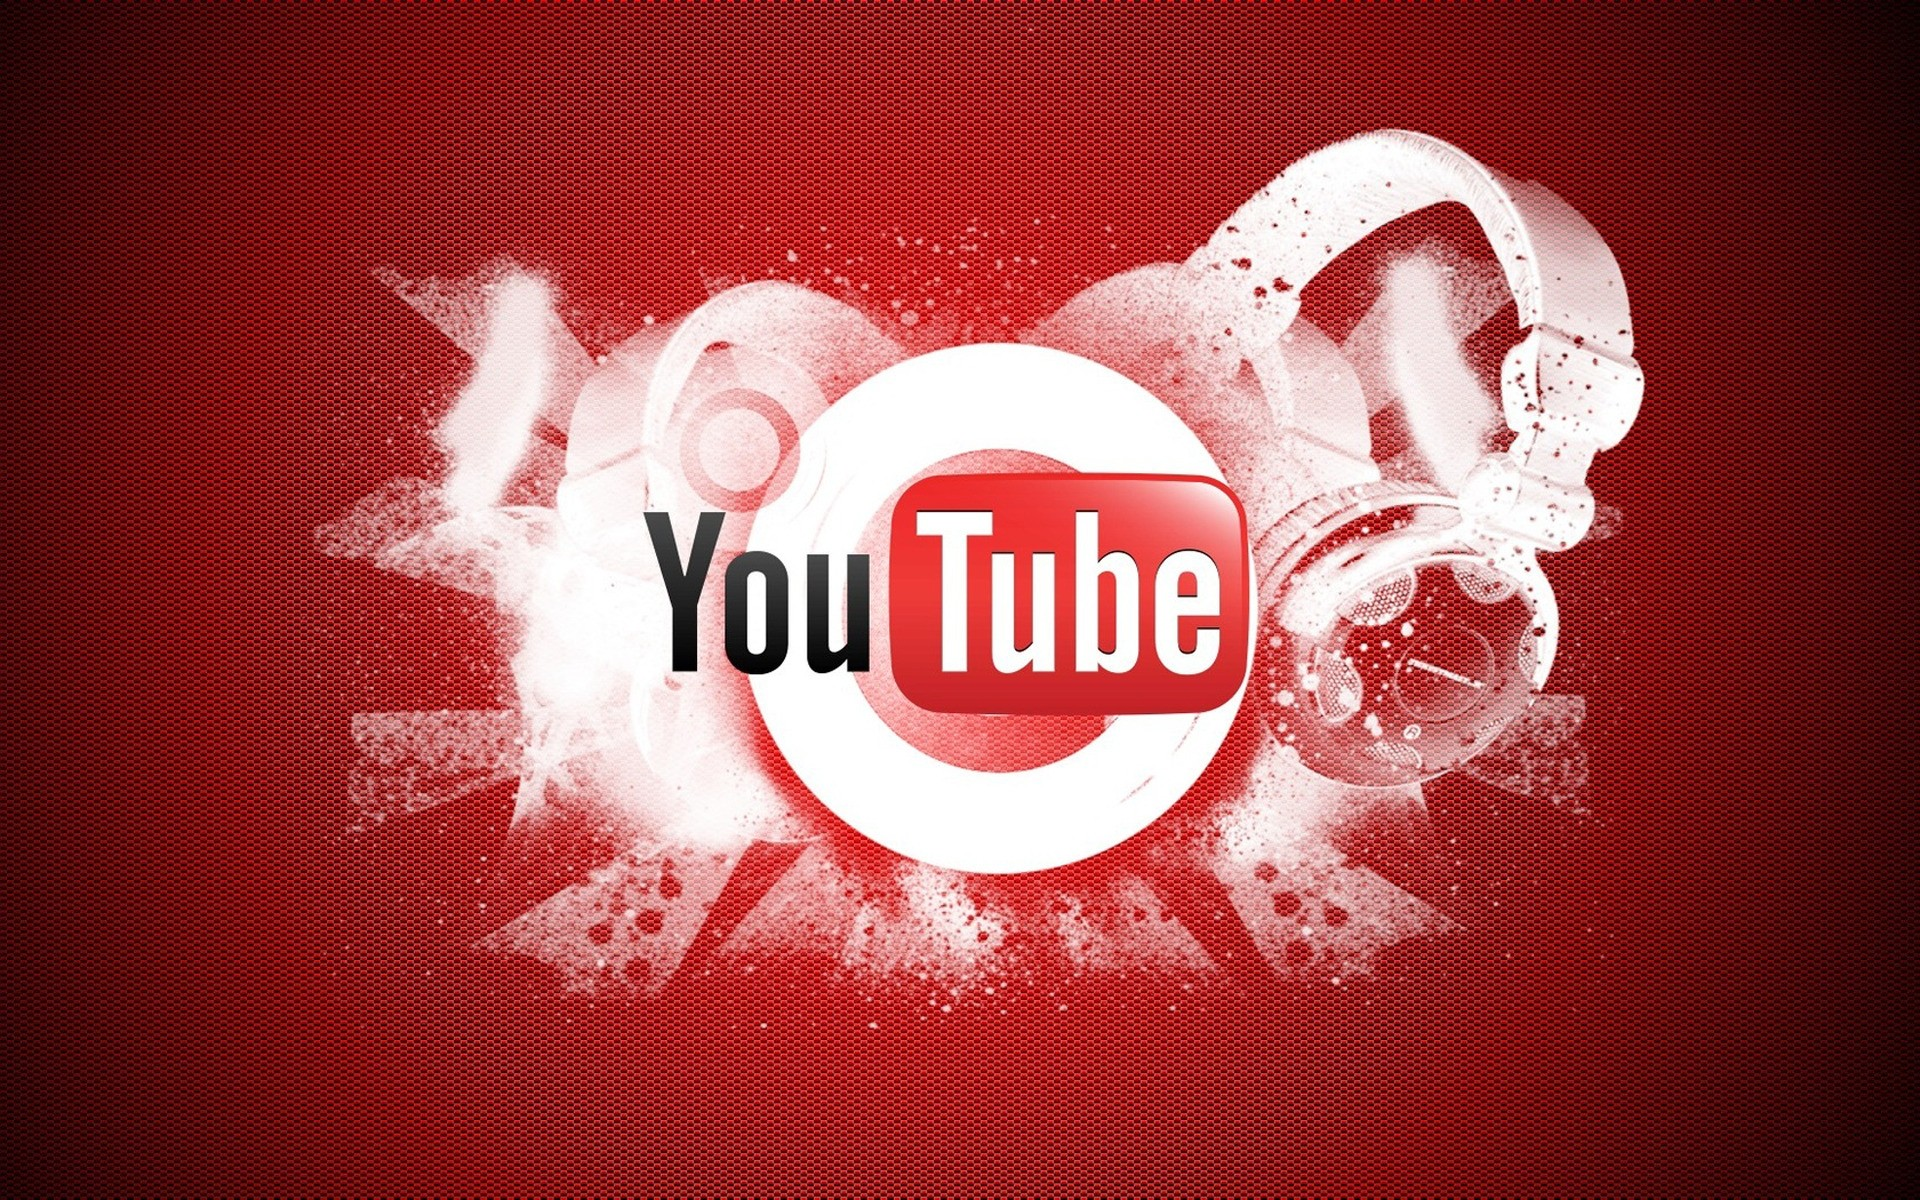 YouTube Logo. Android wallpapers for free.